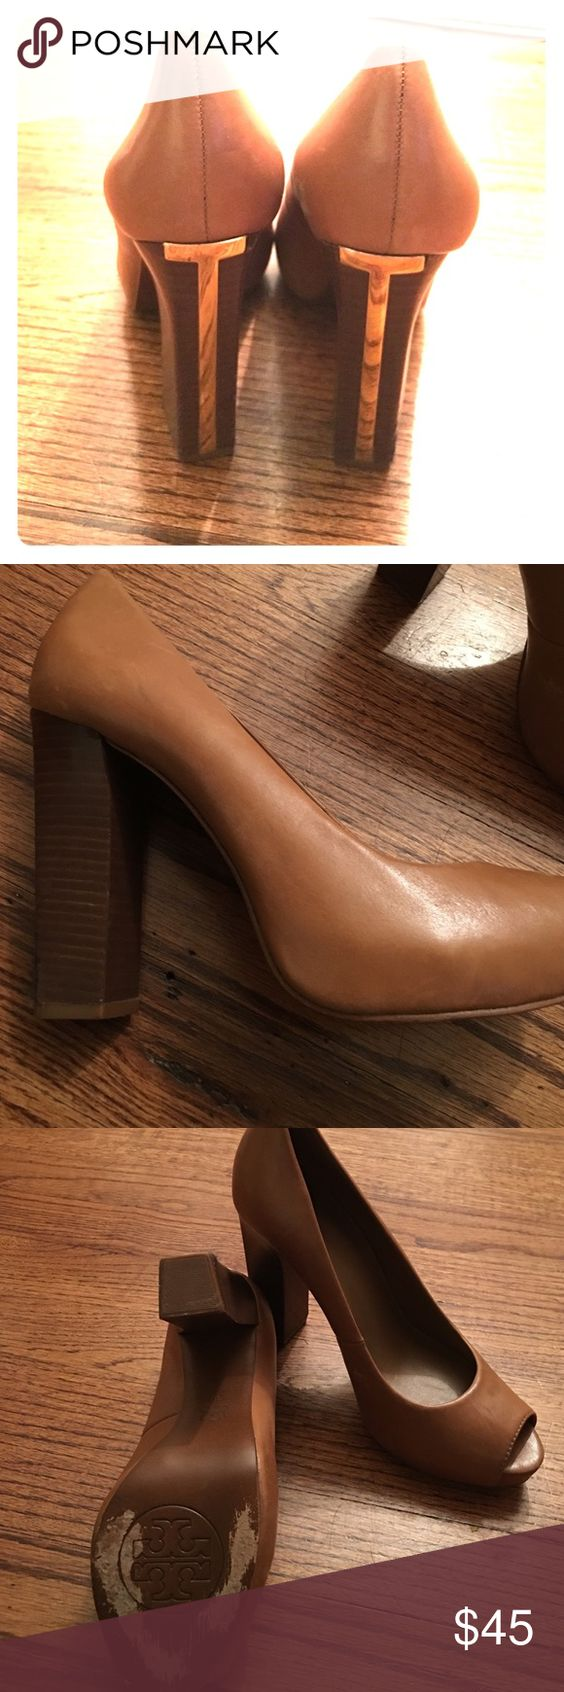 Tory Burch pumps Nude Tory Burch Cantrell Pump 2012. Size 8- worn a few times. Leather isn't saffiano so there are some scratches/scuff marks and discoloration. Heel about 4 inches. Tory Burch Shoes Heels